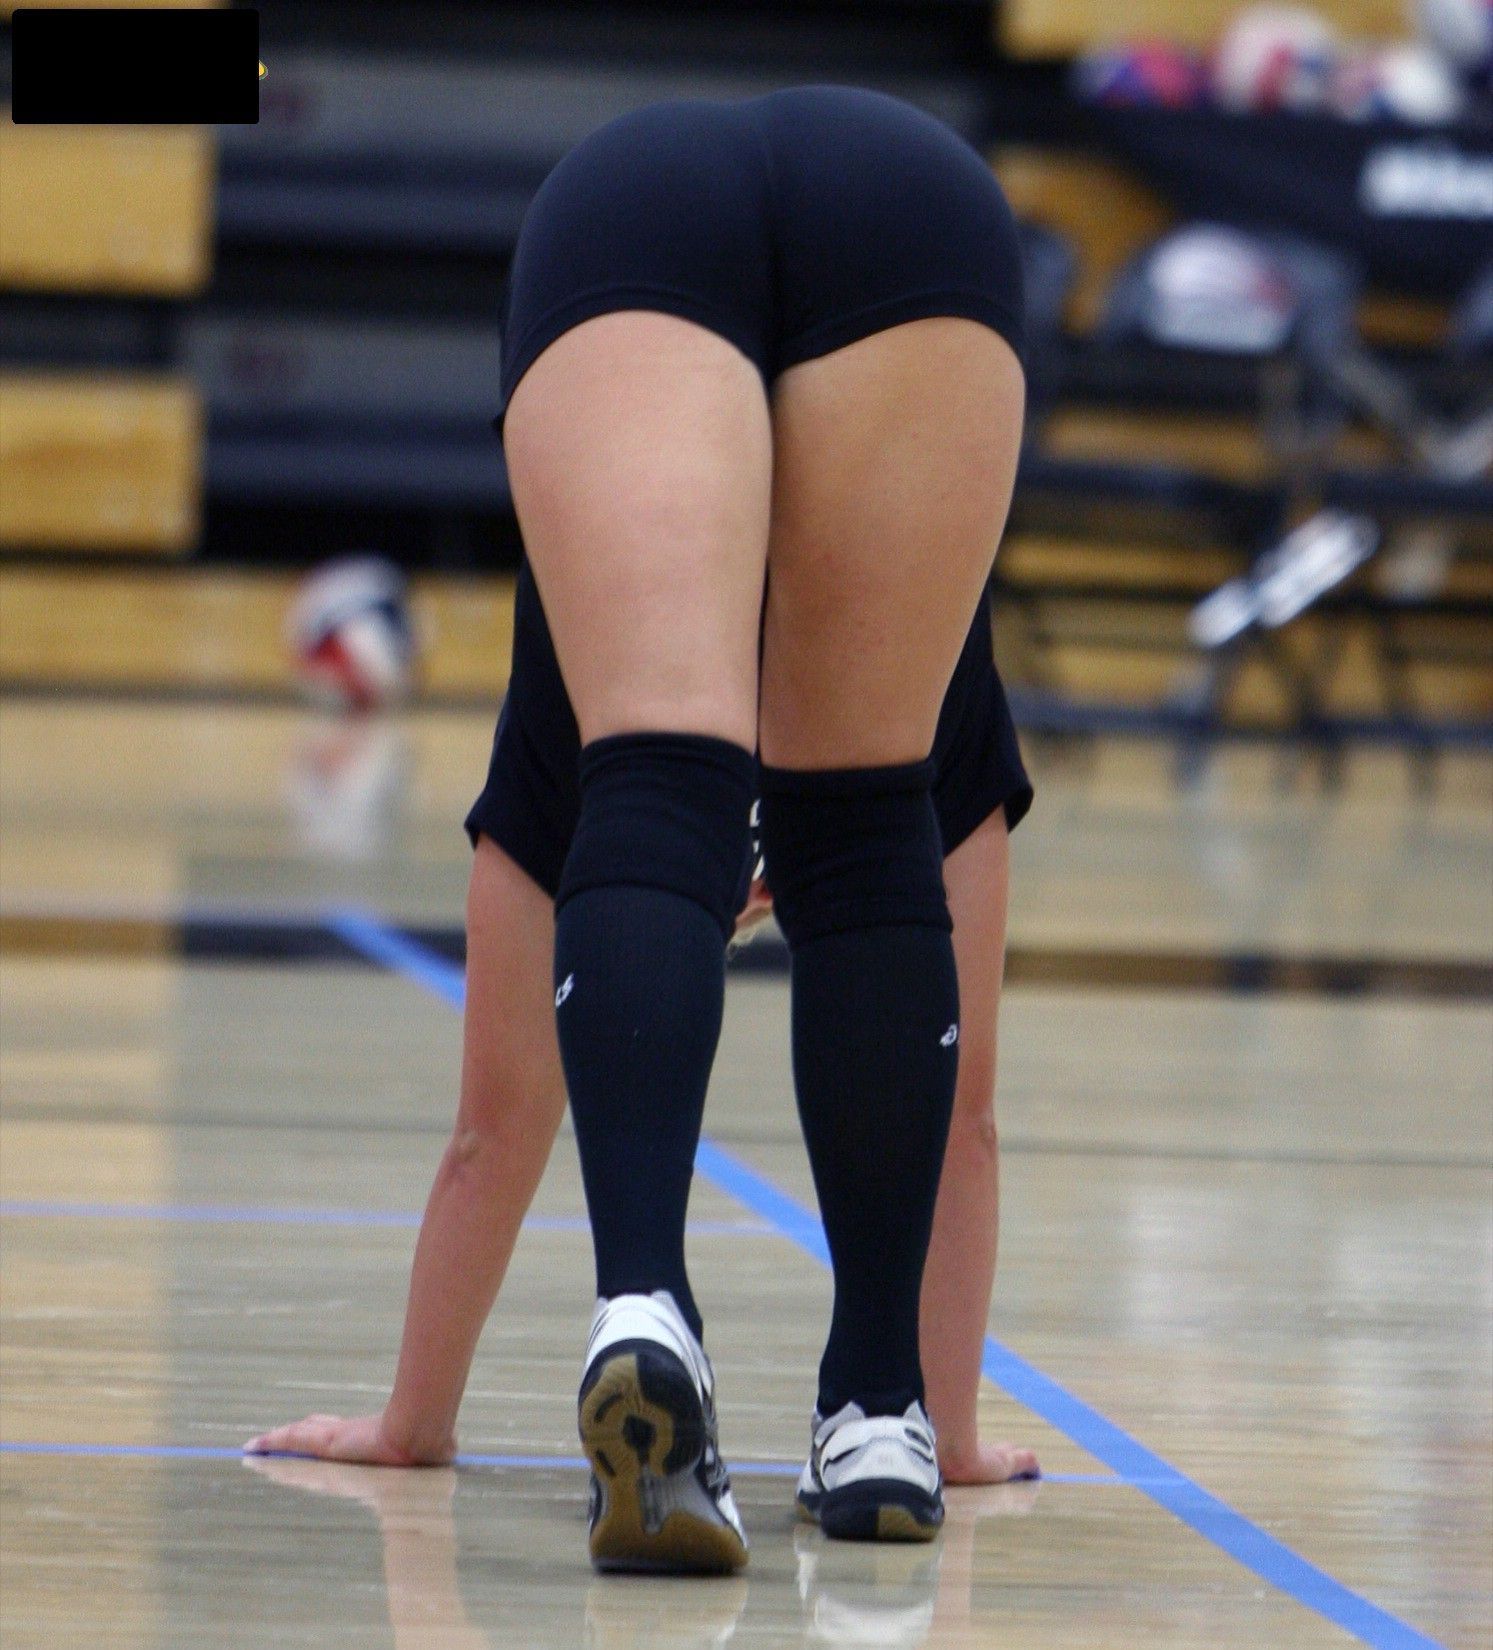 Girls in volleyball shorts pantie lines — 6